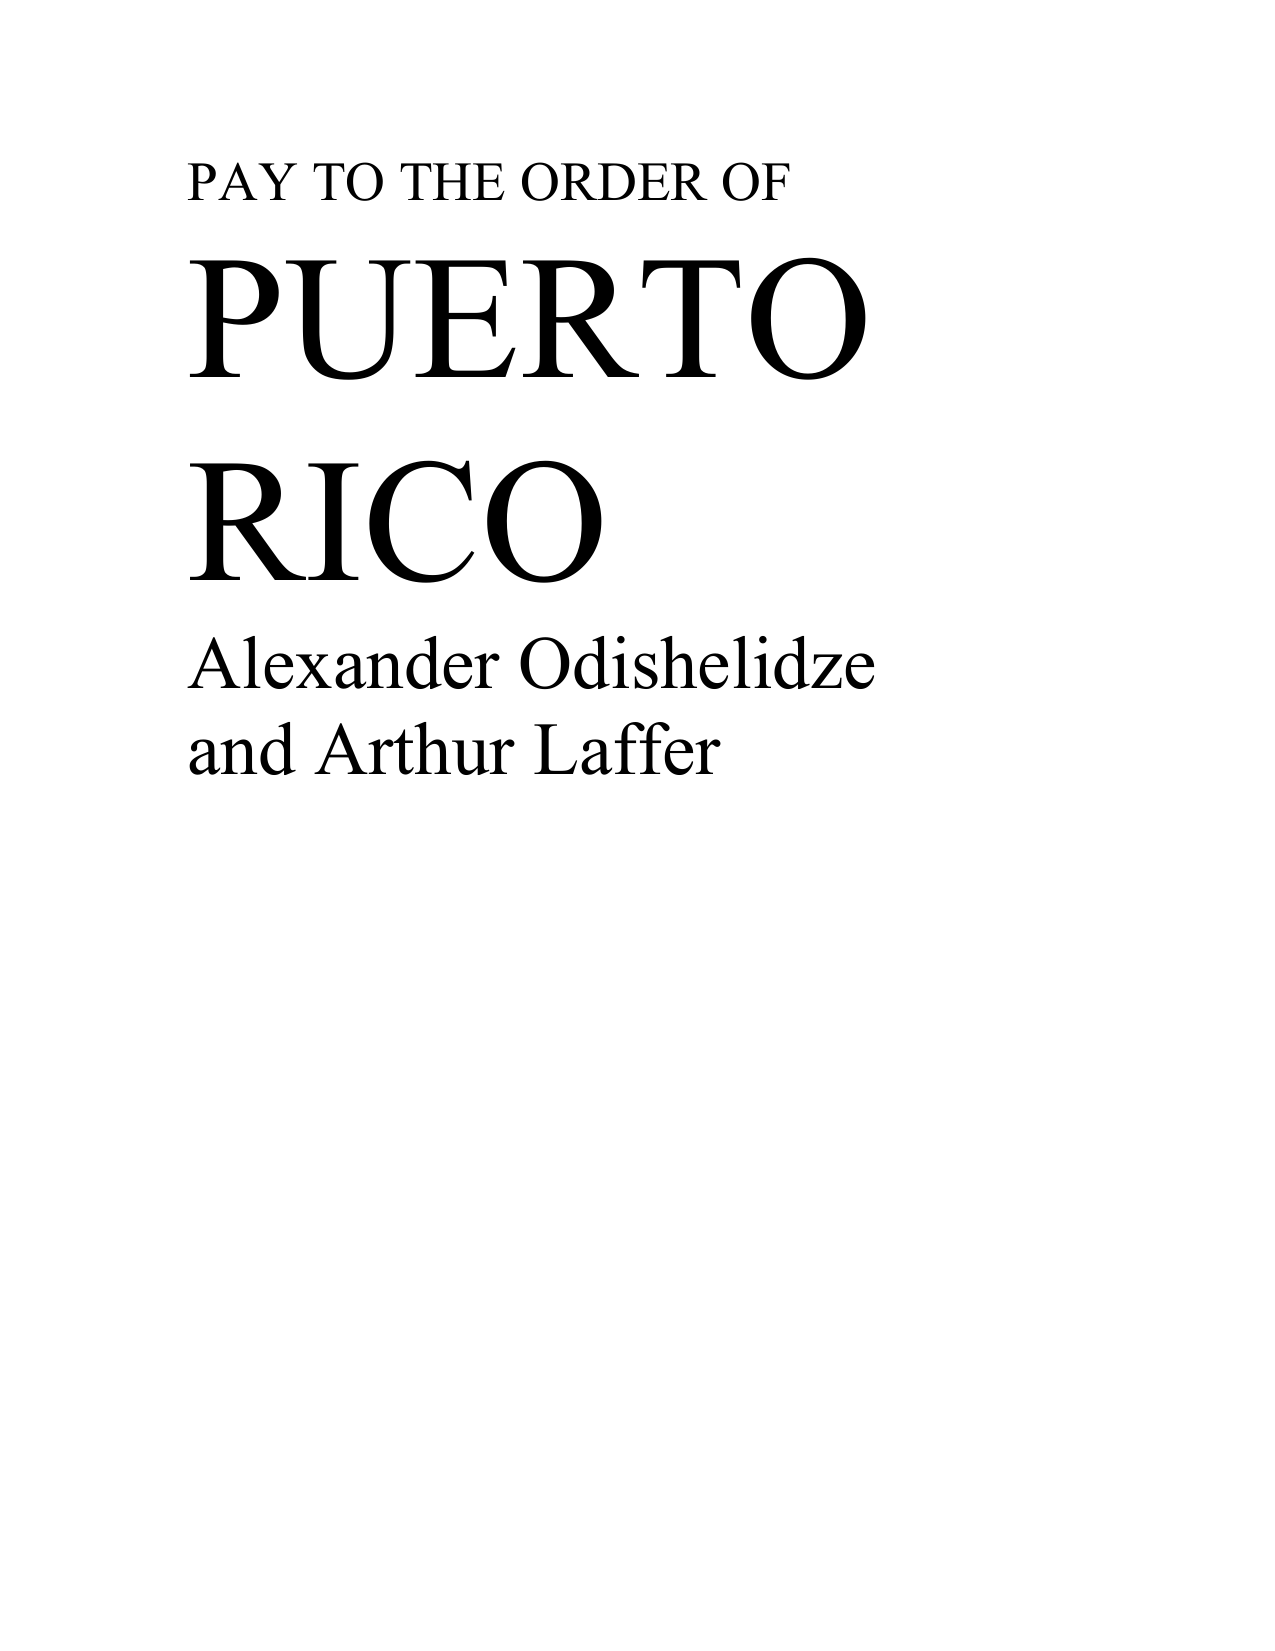 PAY TO THE ORDER OF - Puerto Rico Herald